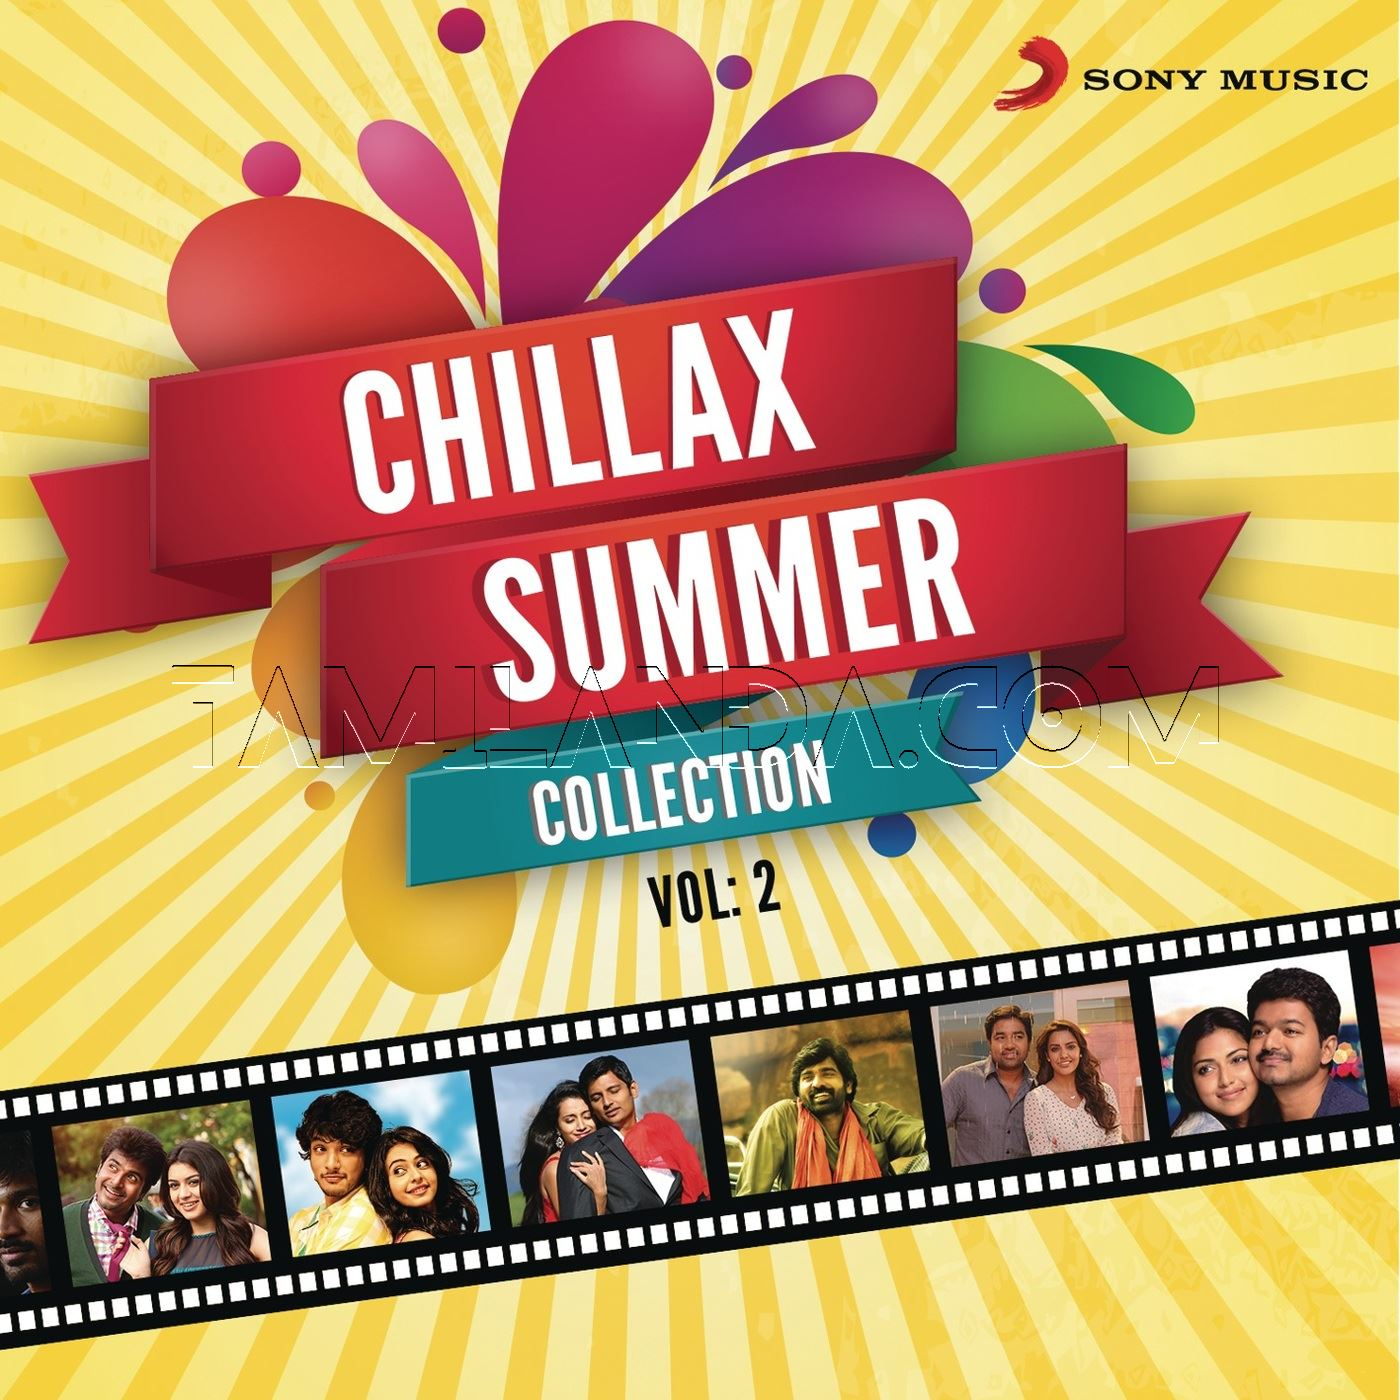 Chillax Summer Collection, Vol. 2 FLAC Songs (2014)